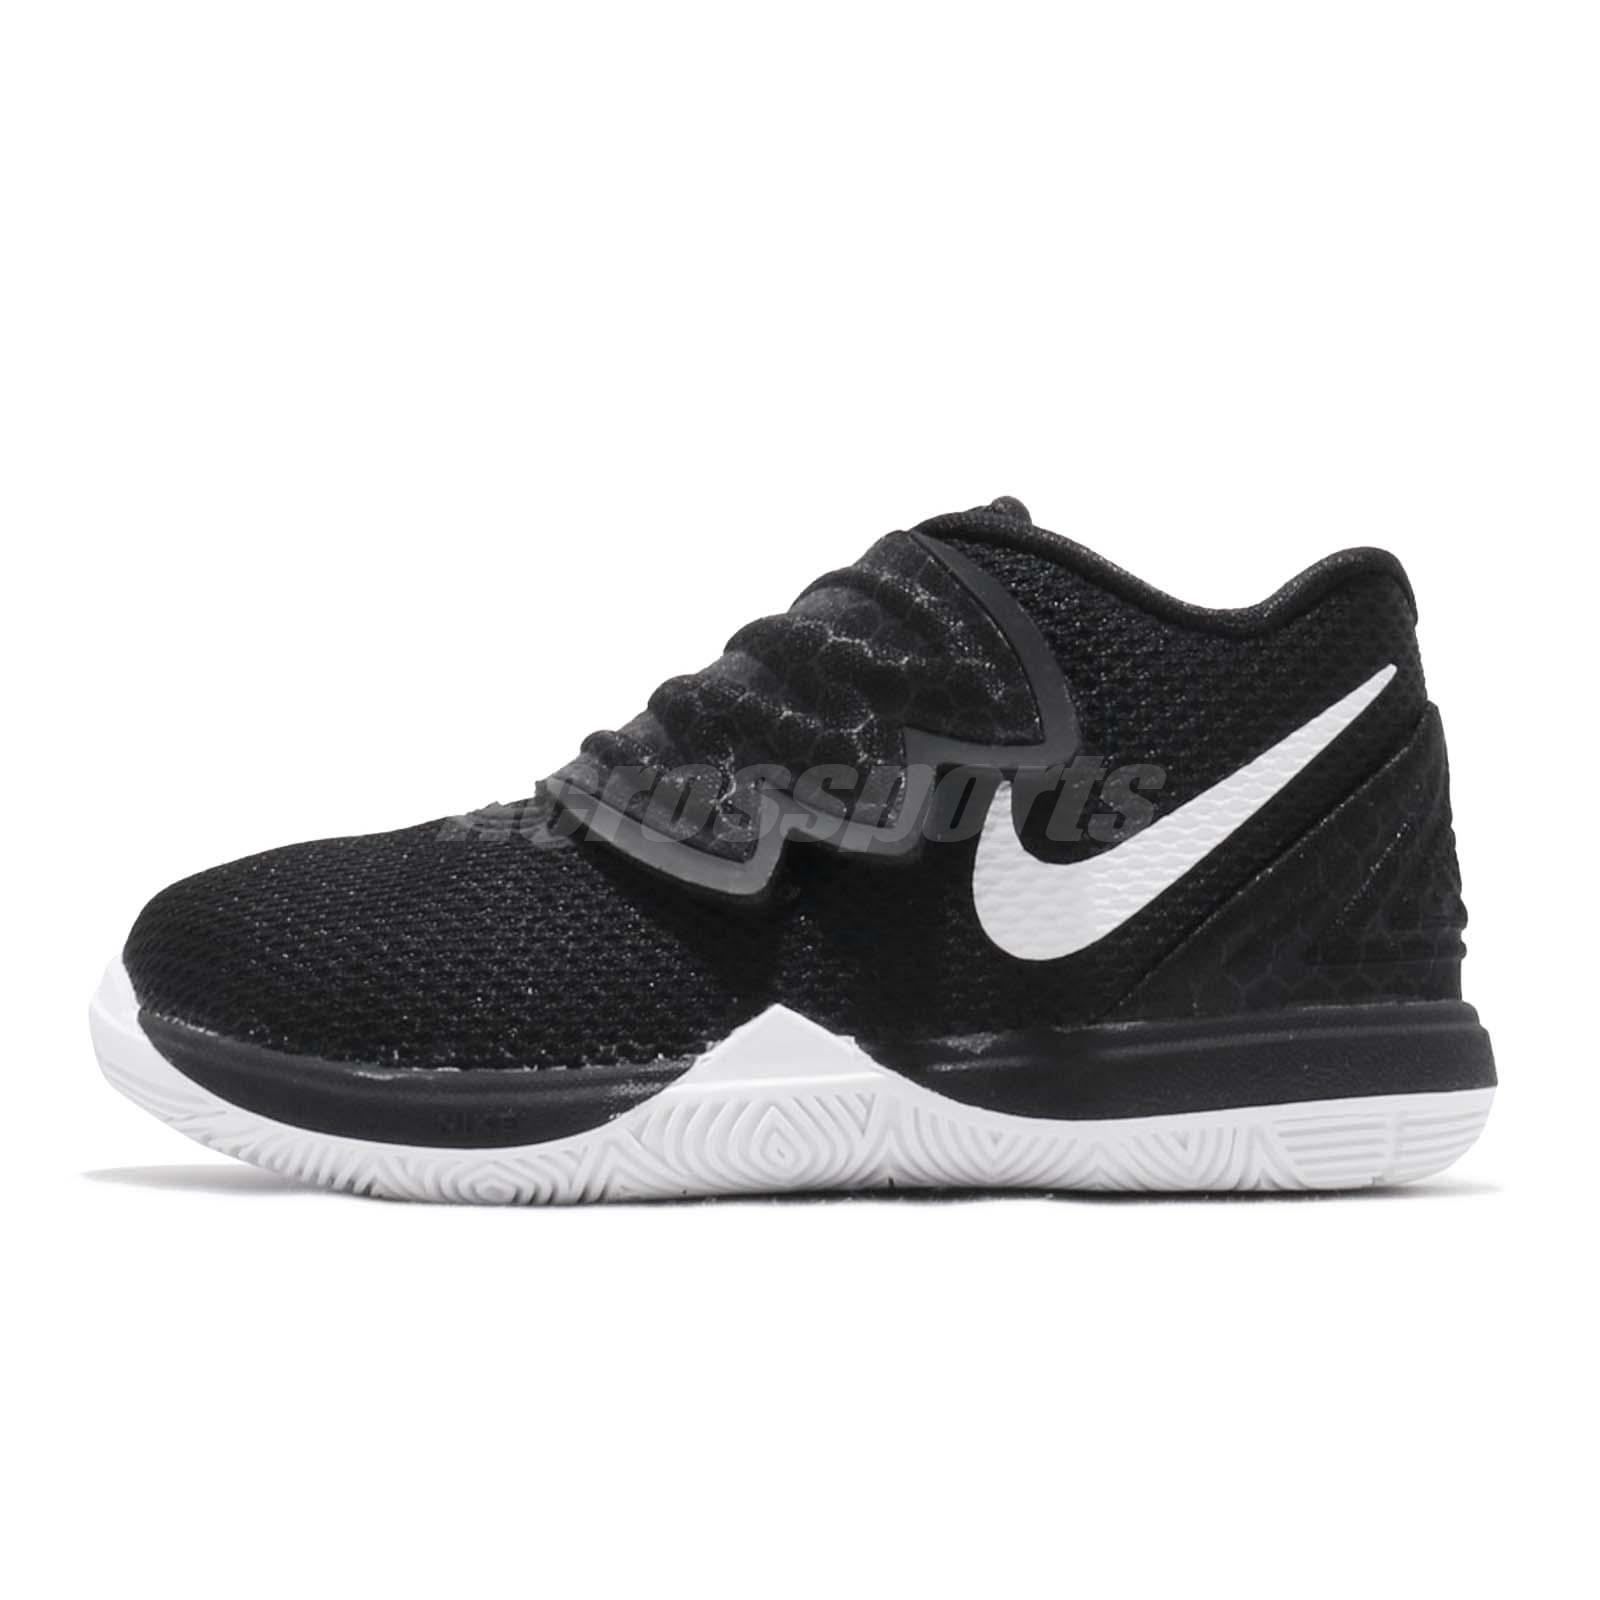 best sneakers 82ee6 5ea91 Nike Kyrie 5 TD Black White Irving Toddler Infant Shoes Baby Sneakers  AQ2459-901